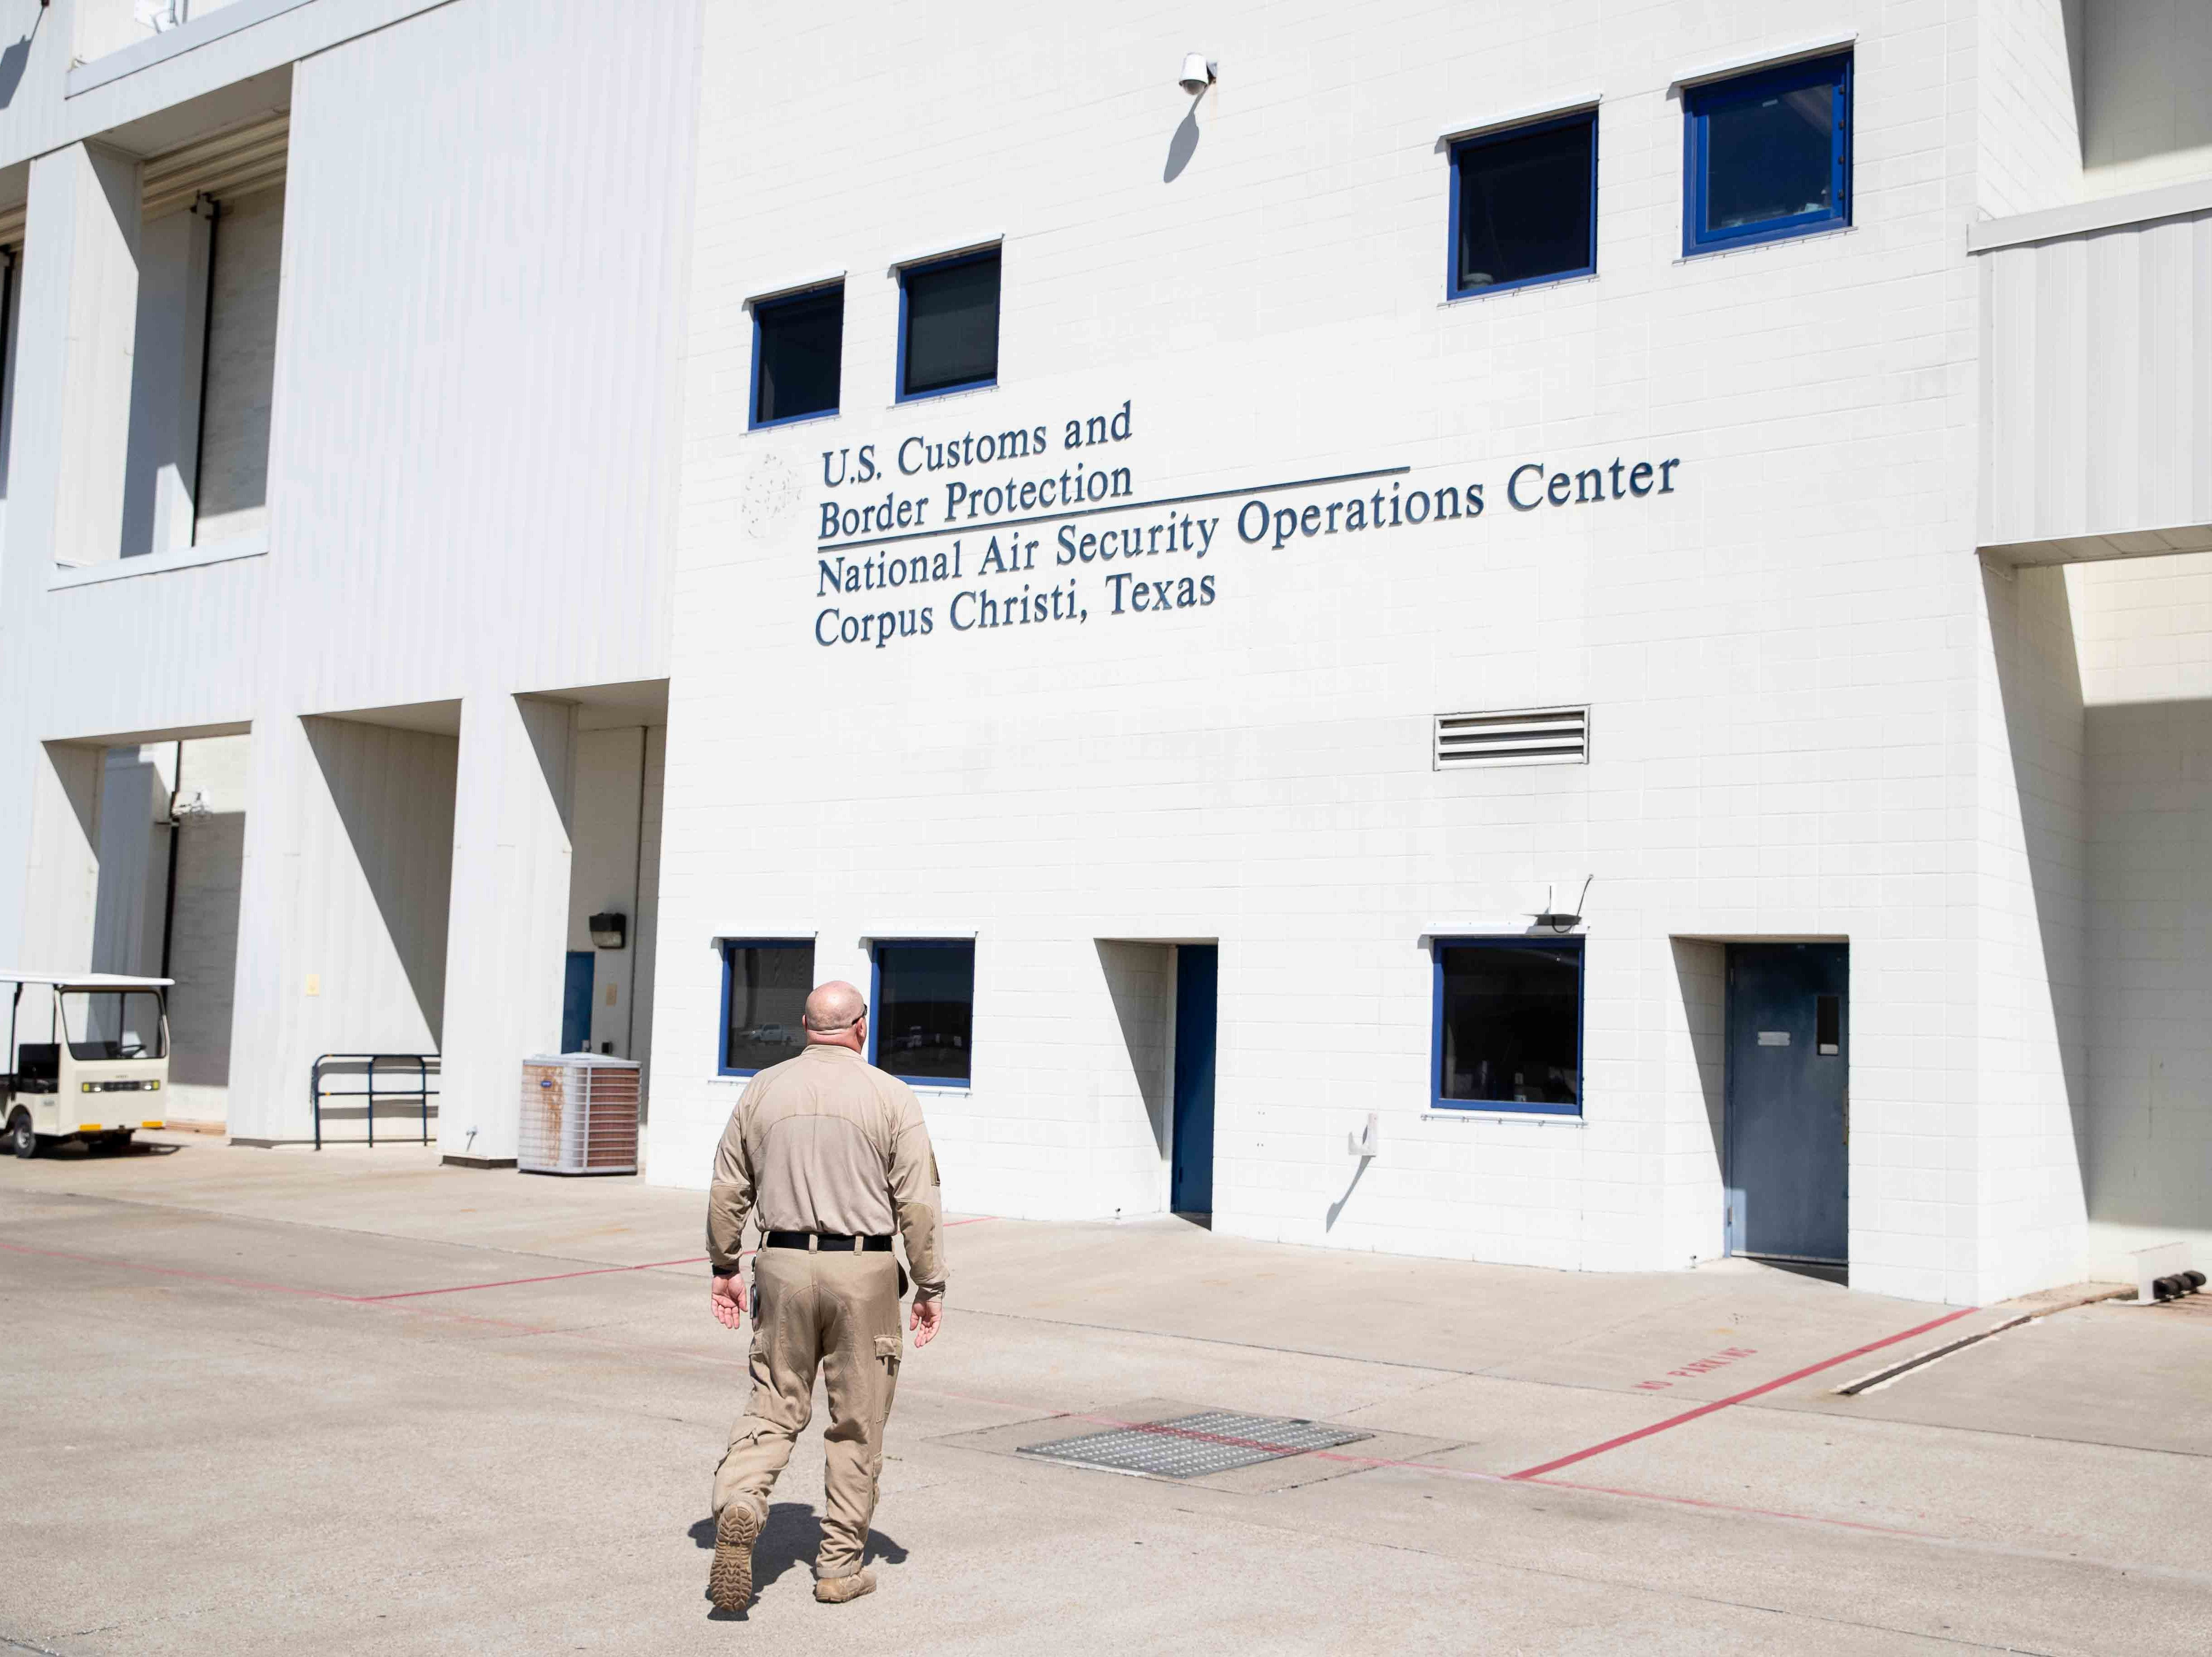 Customs and Border Protection's National Air Security Operations Center on Navy Air Station Corpus Christi on Wednesday, Feb. 20, 2019.